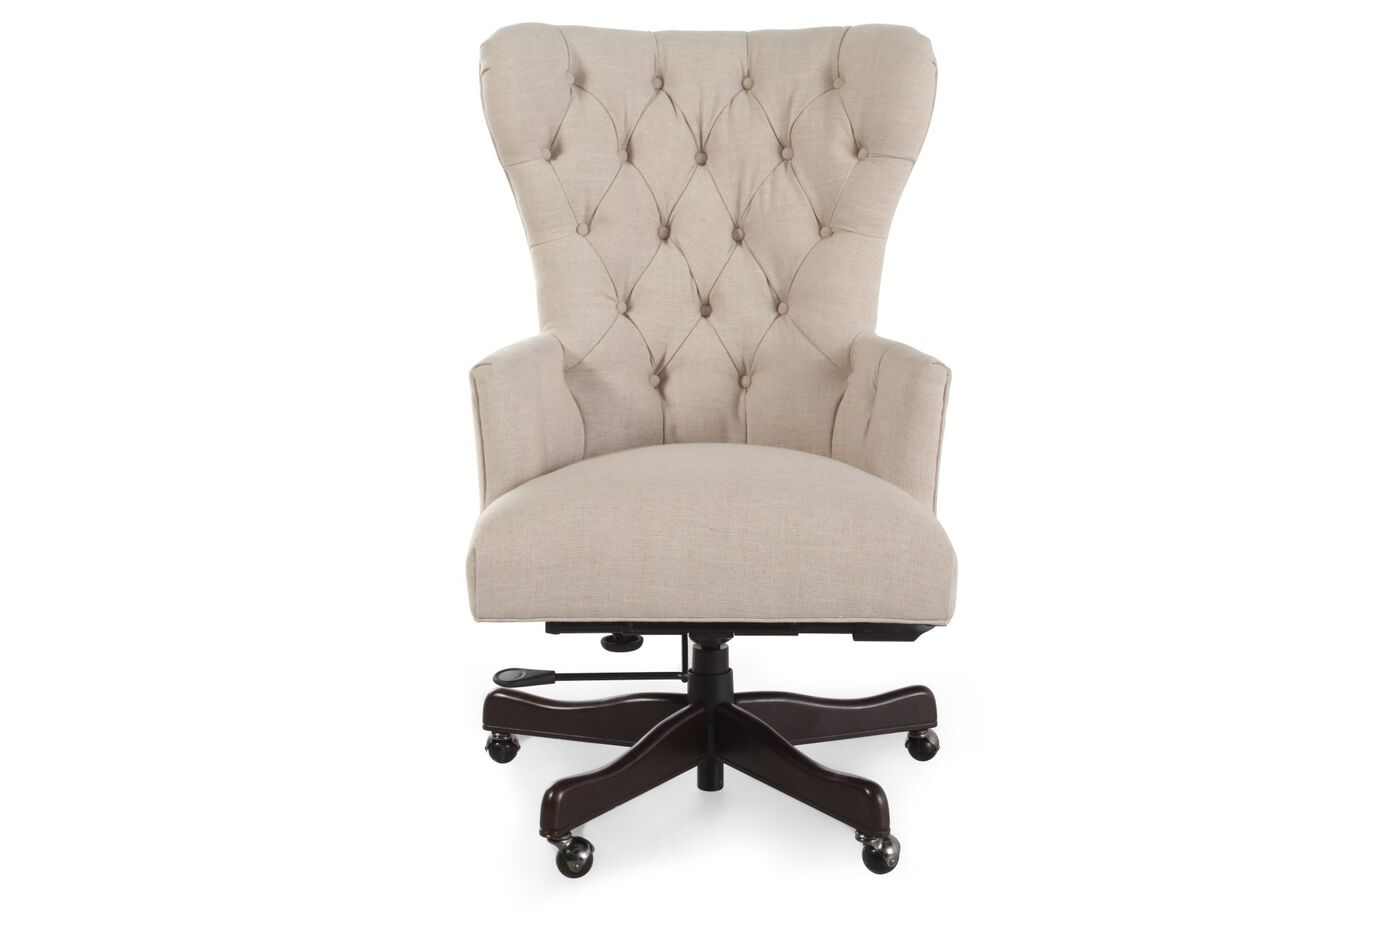 Button Tufted Swivel Desk Chair in Natchez Brown | Mathis Brothers ...